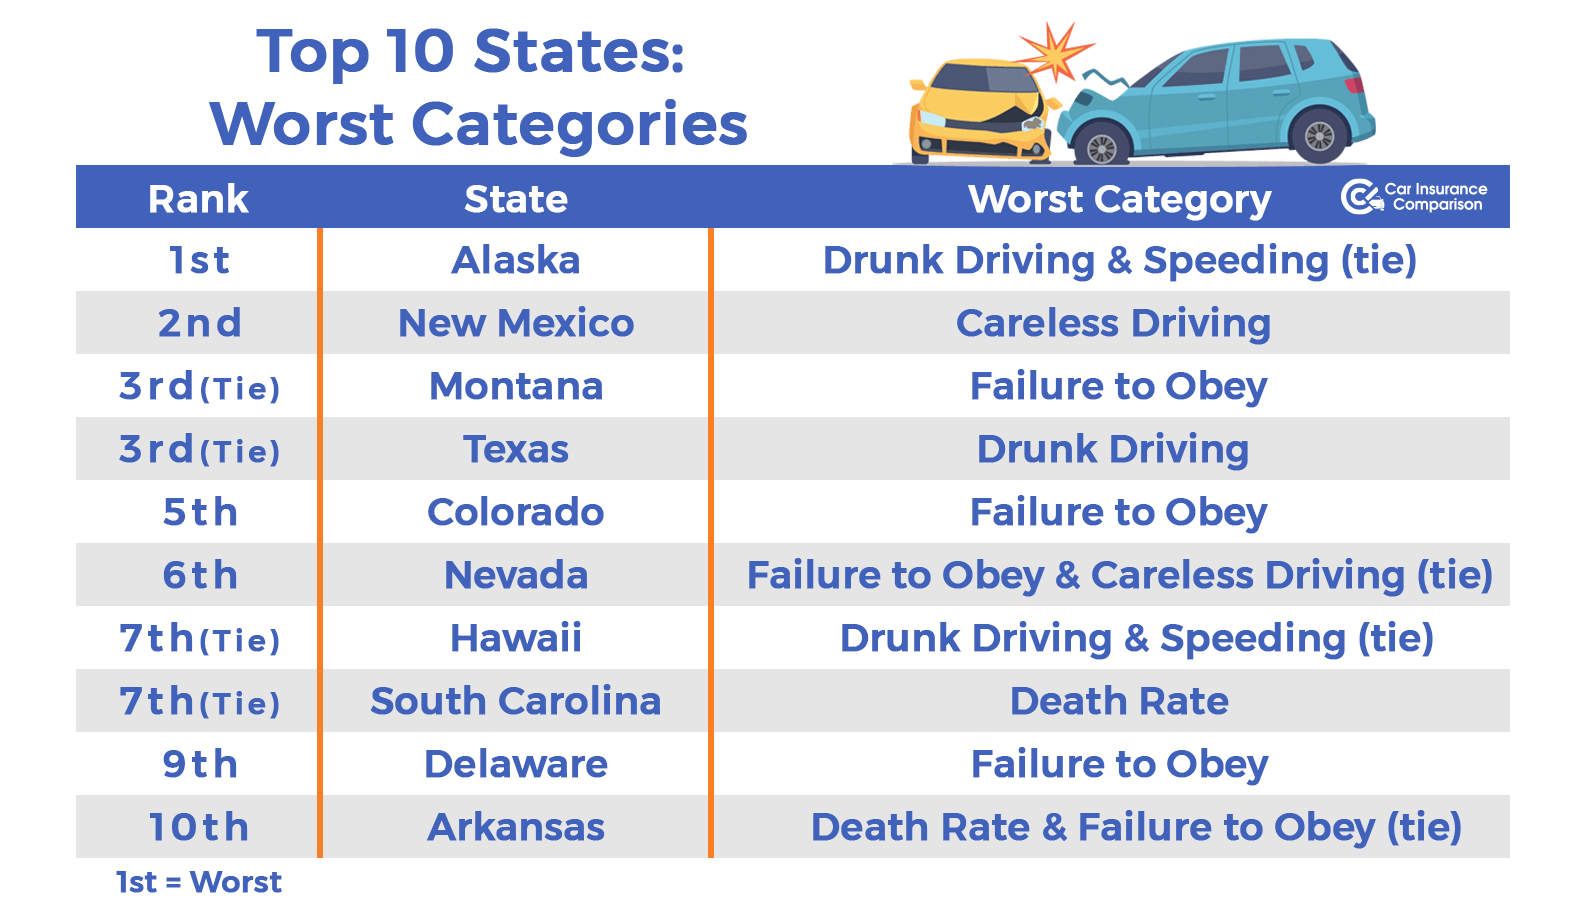 10 states with the worst drivers - worst categories